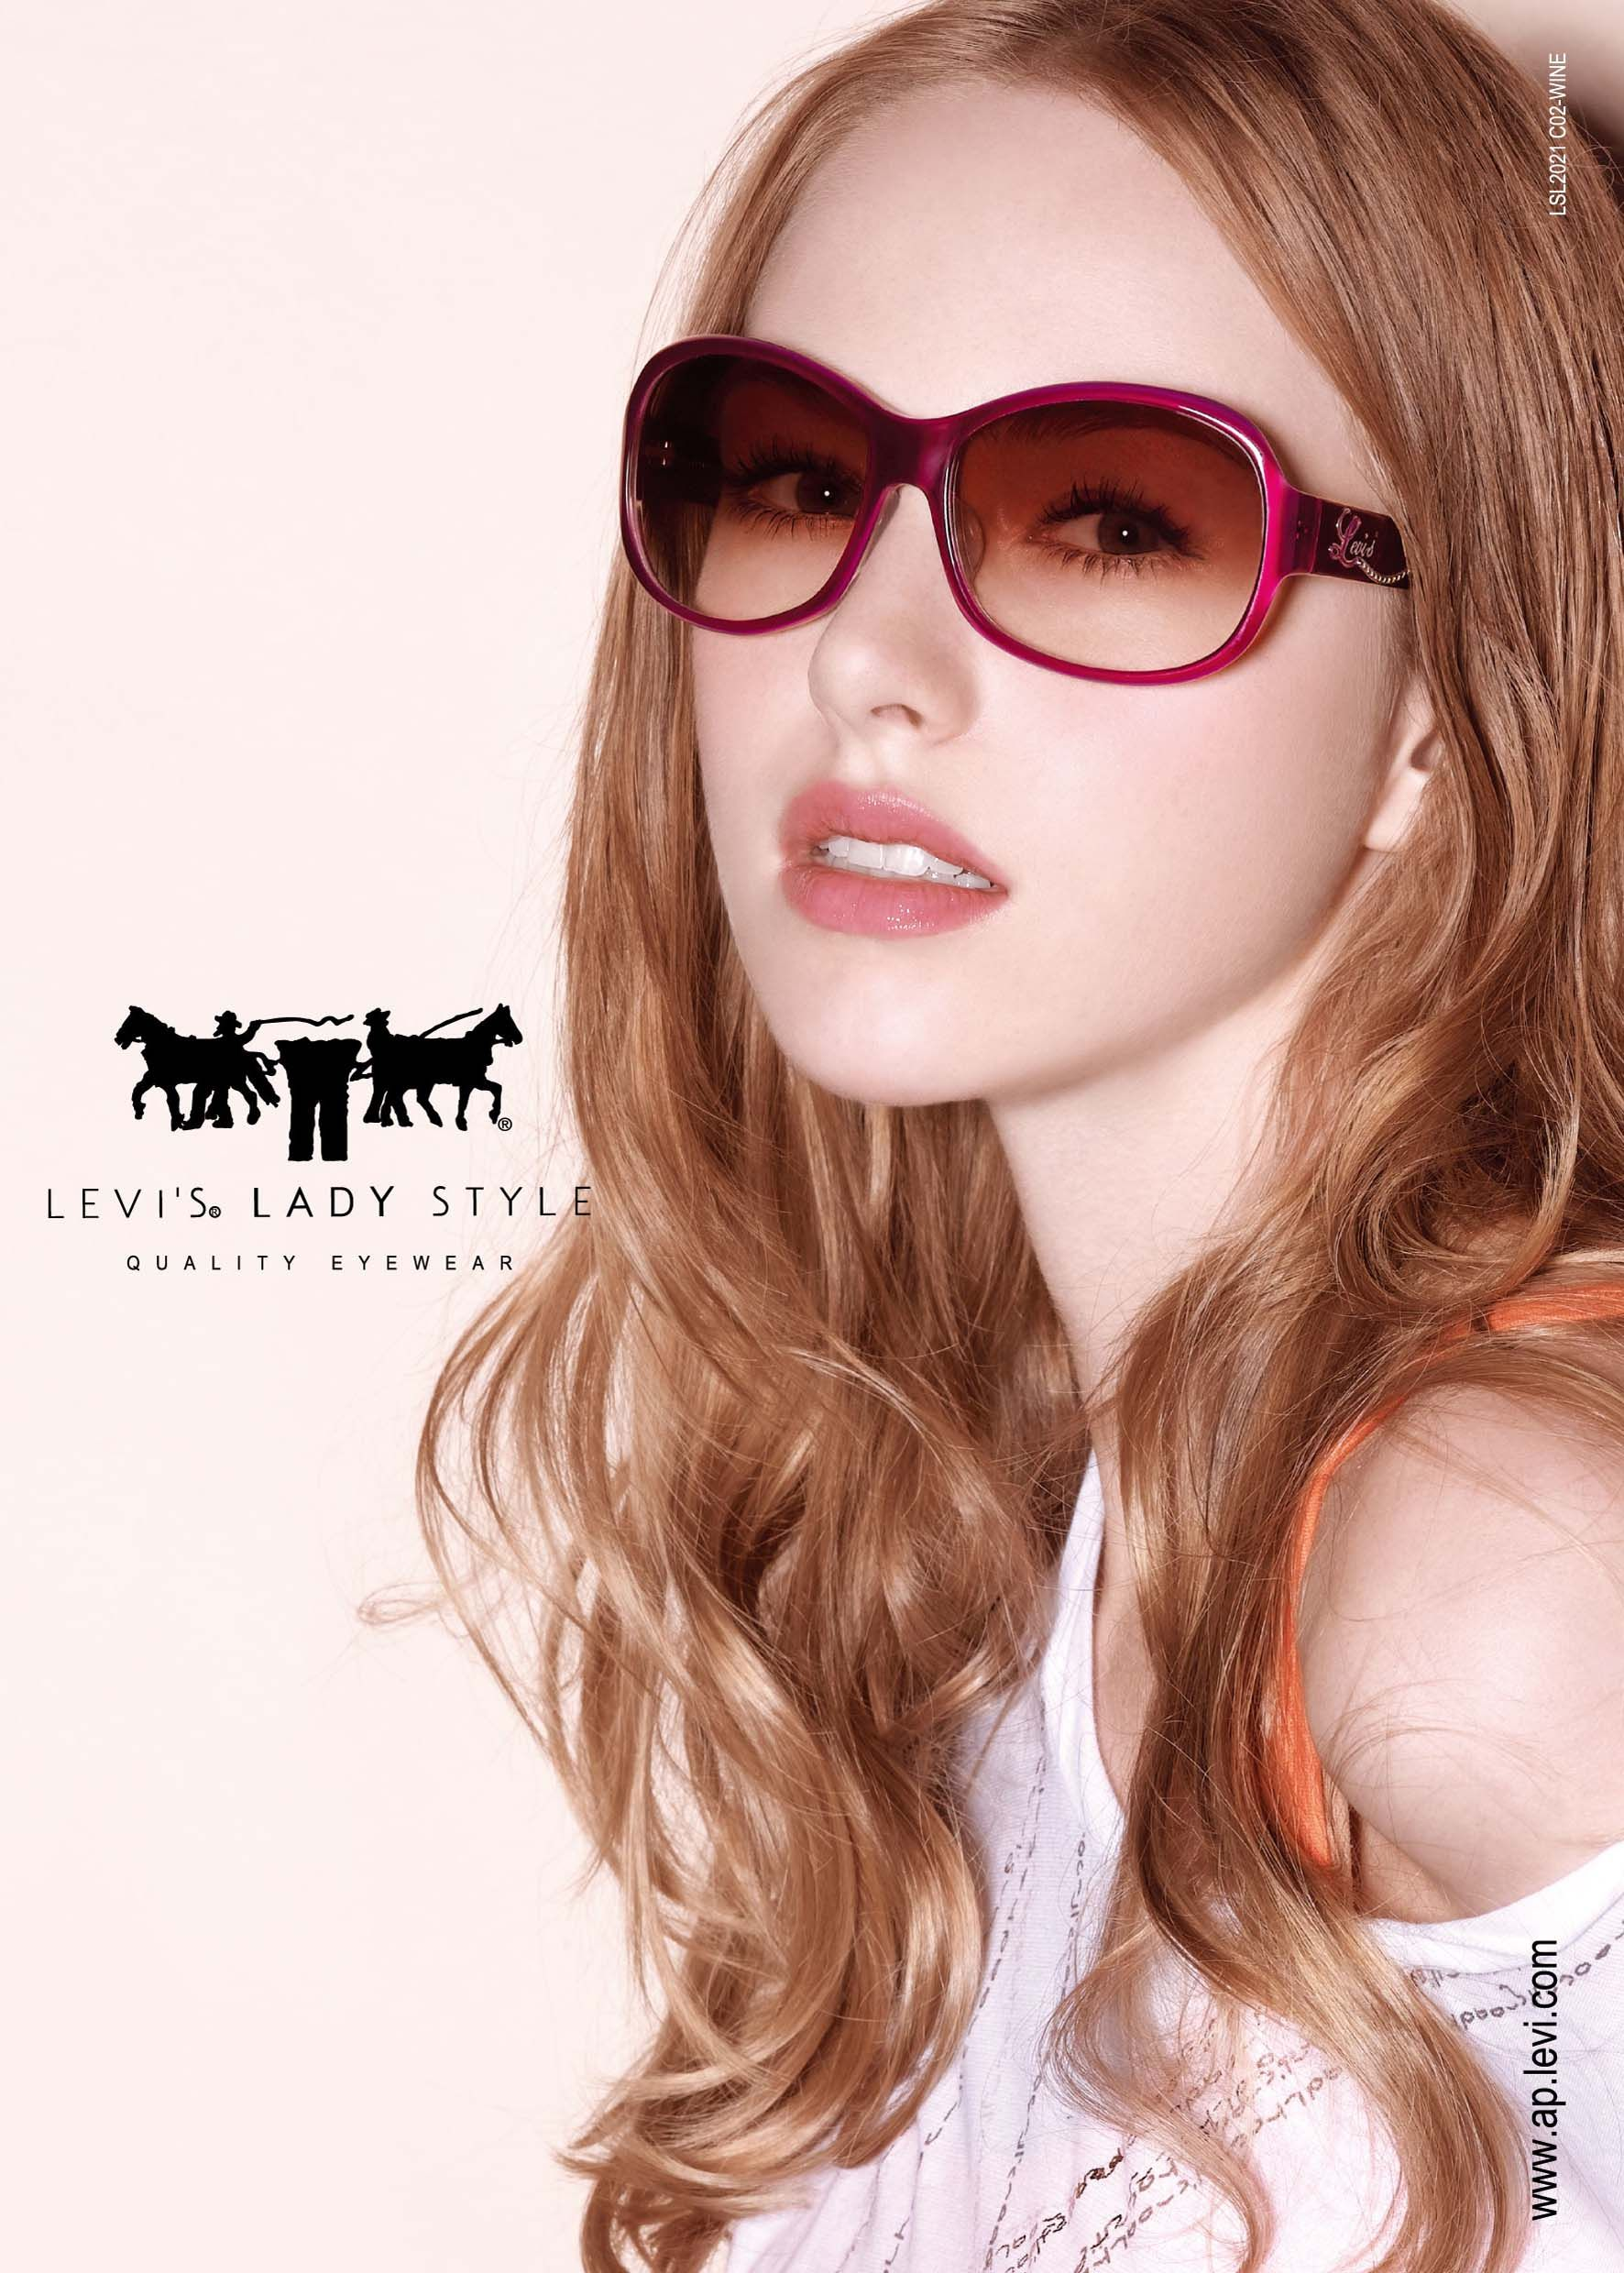 552fde1690a4b Levi s Lady Style 2011 Image Visual Sunglasses   Vier Augen ...